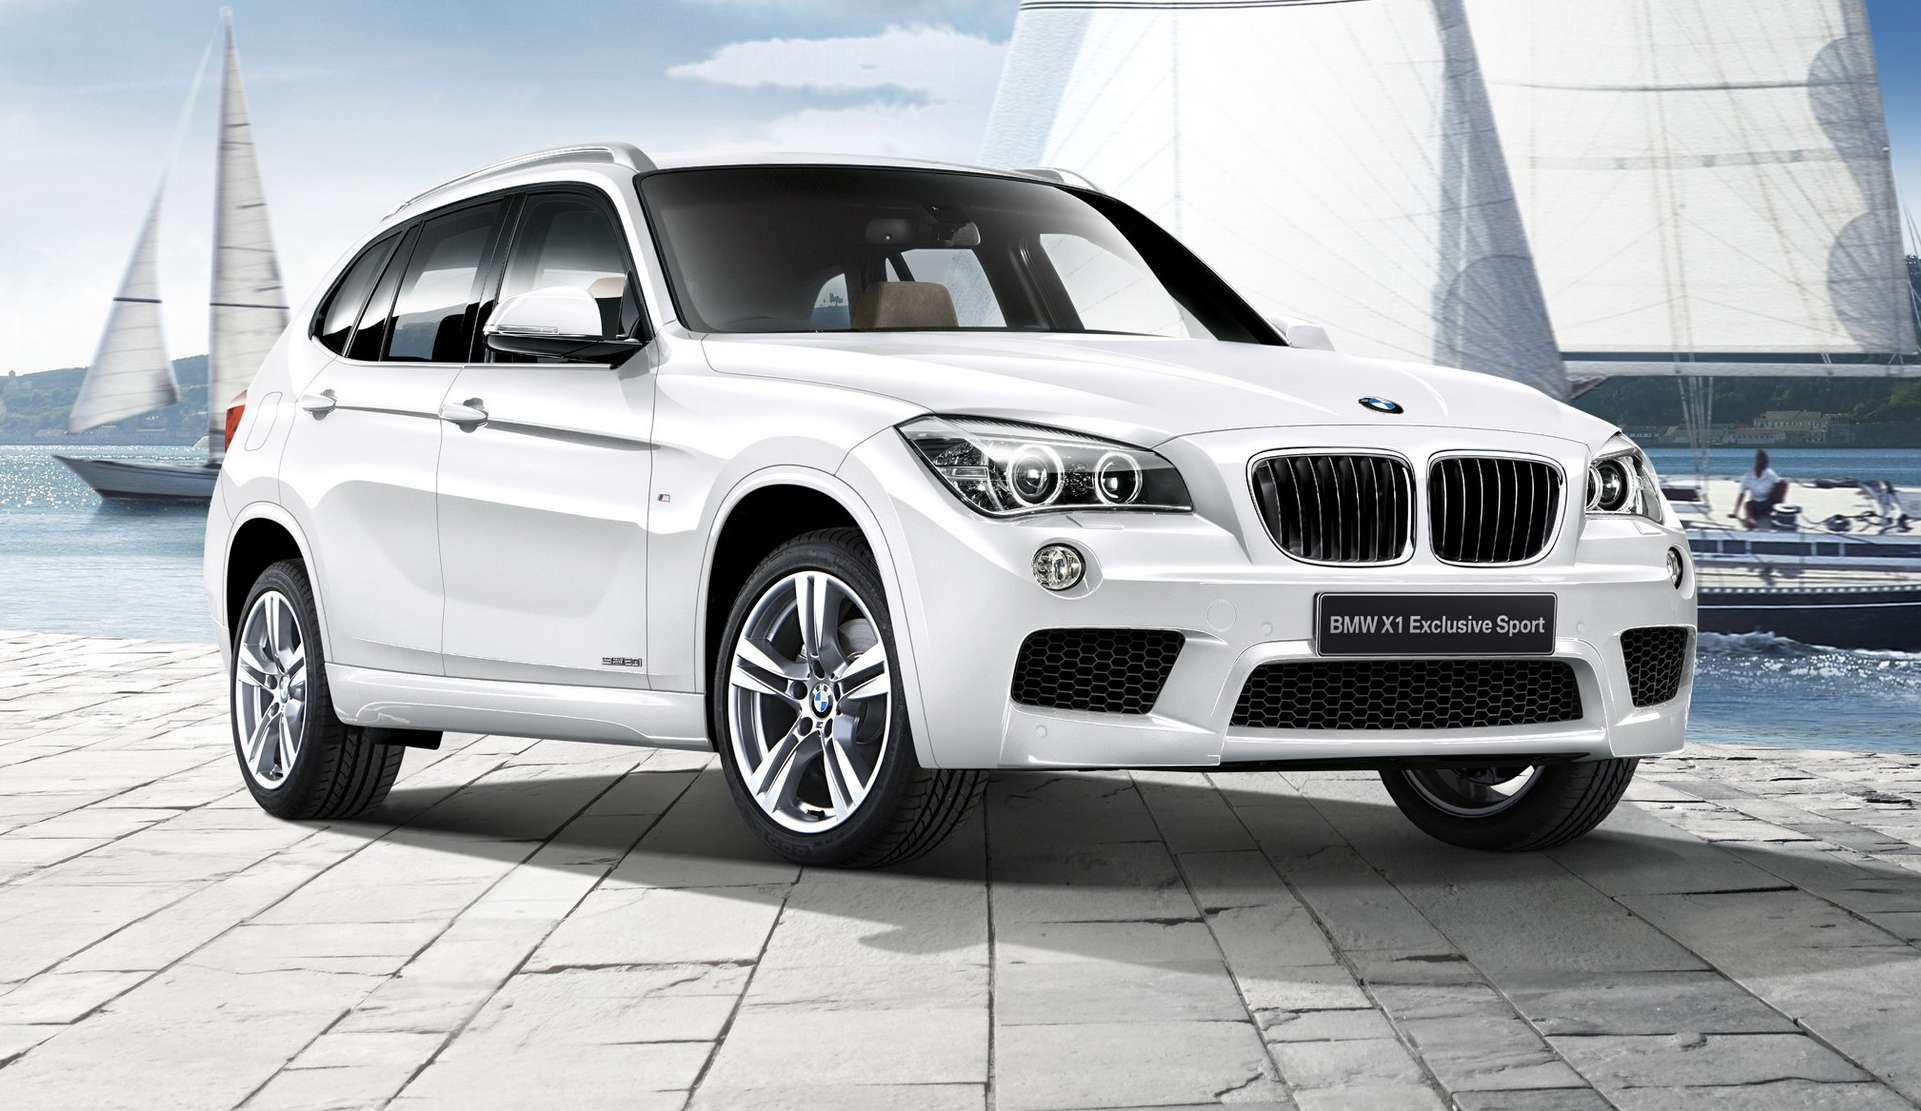 2014 bmw x1 exclusive sport review gallery top speed. Black Bedroom Furniture Sets. Home Design Ideas